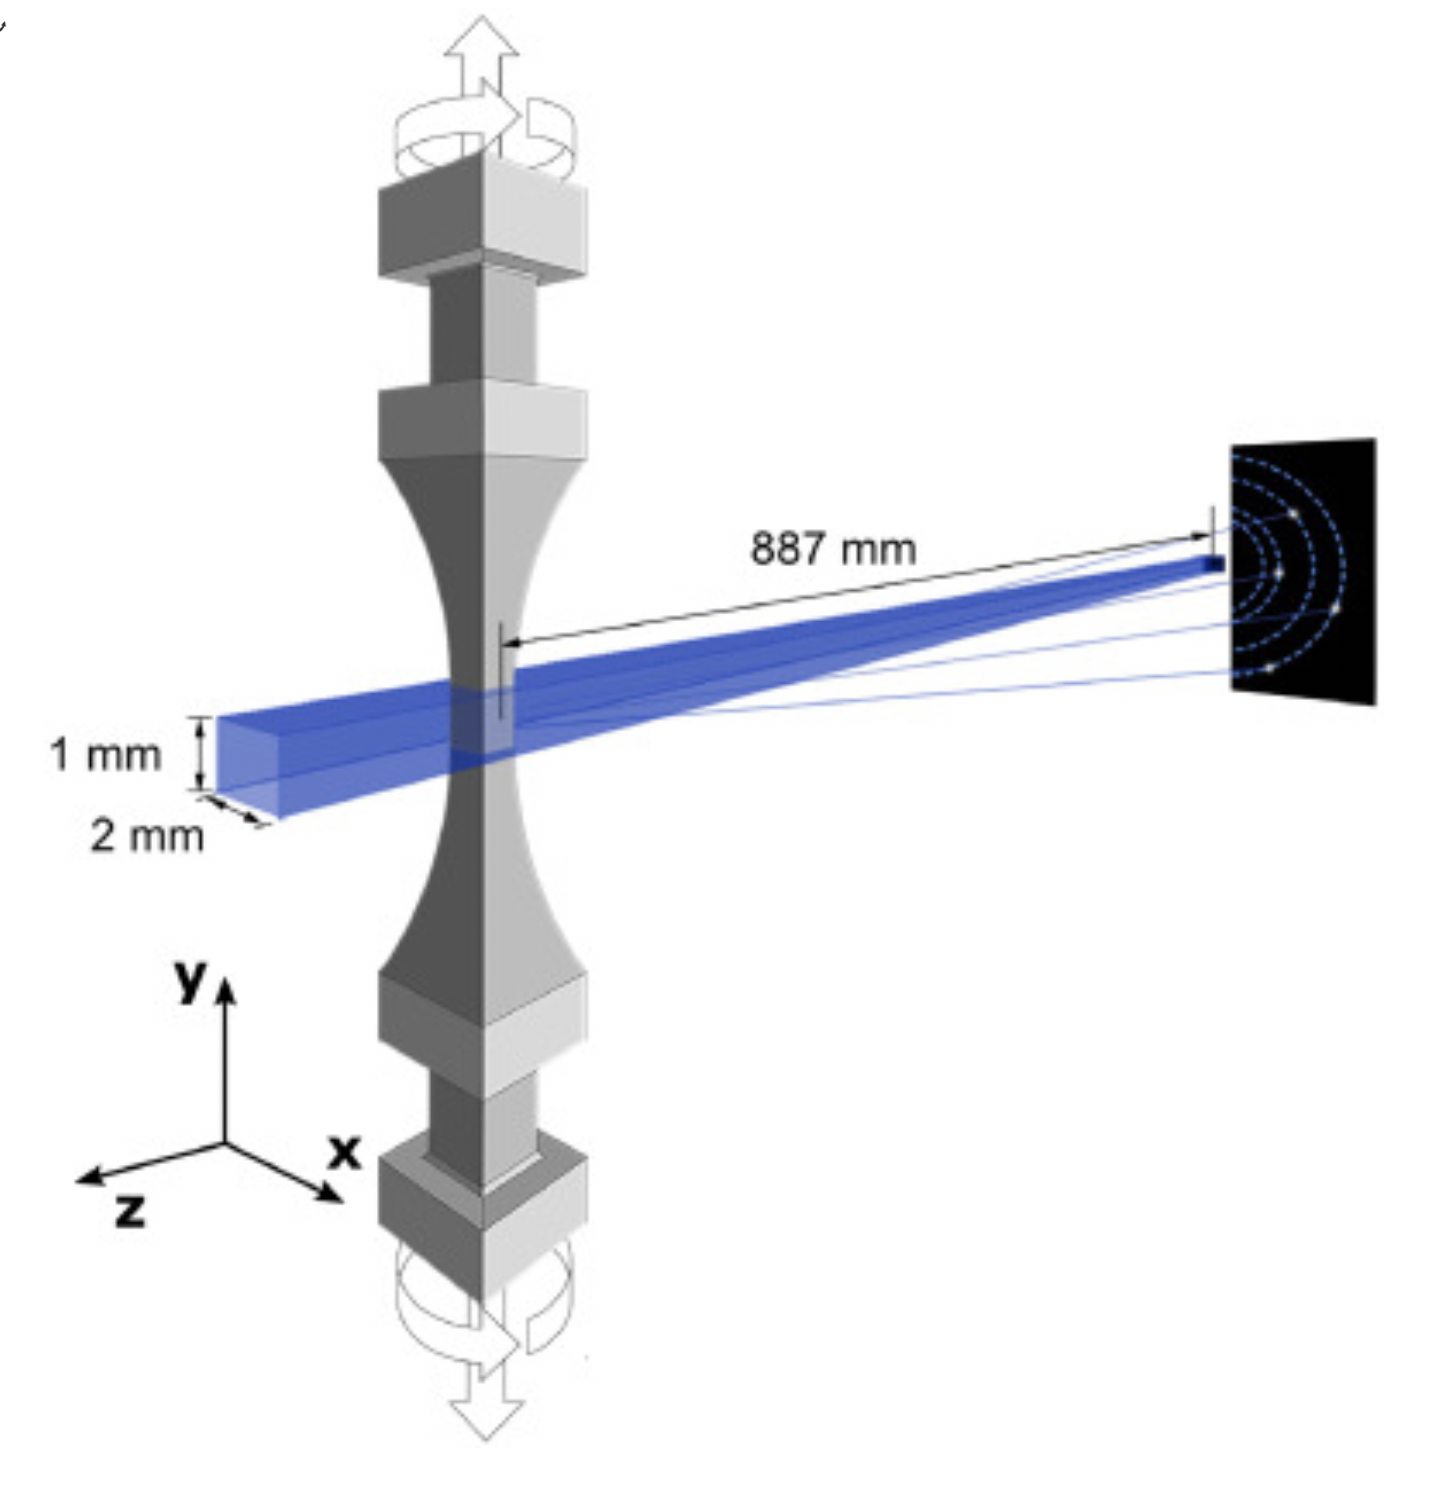 experimental configuration for the in-situ X-ray measurements